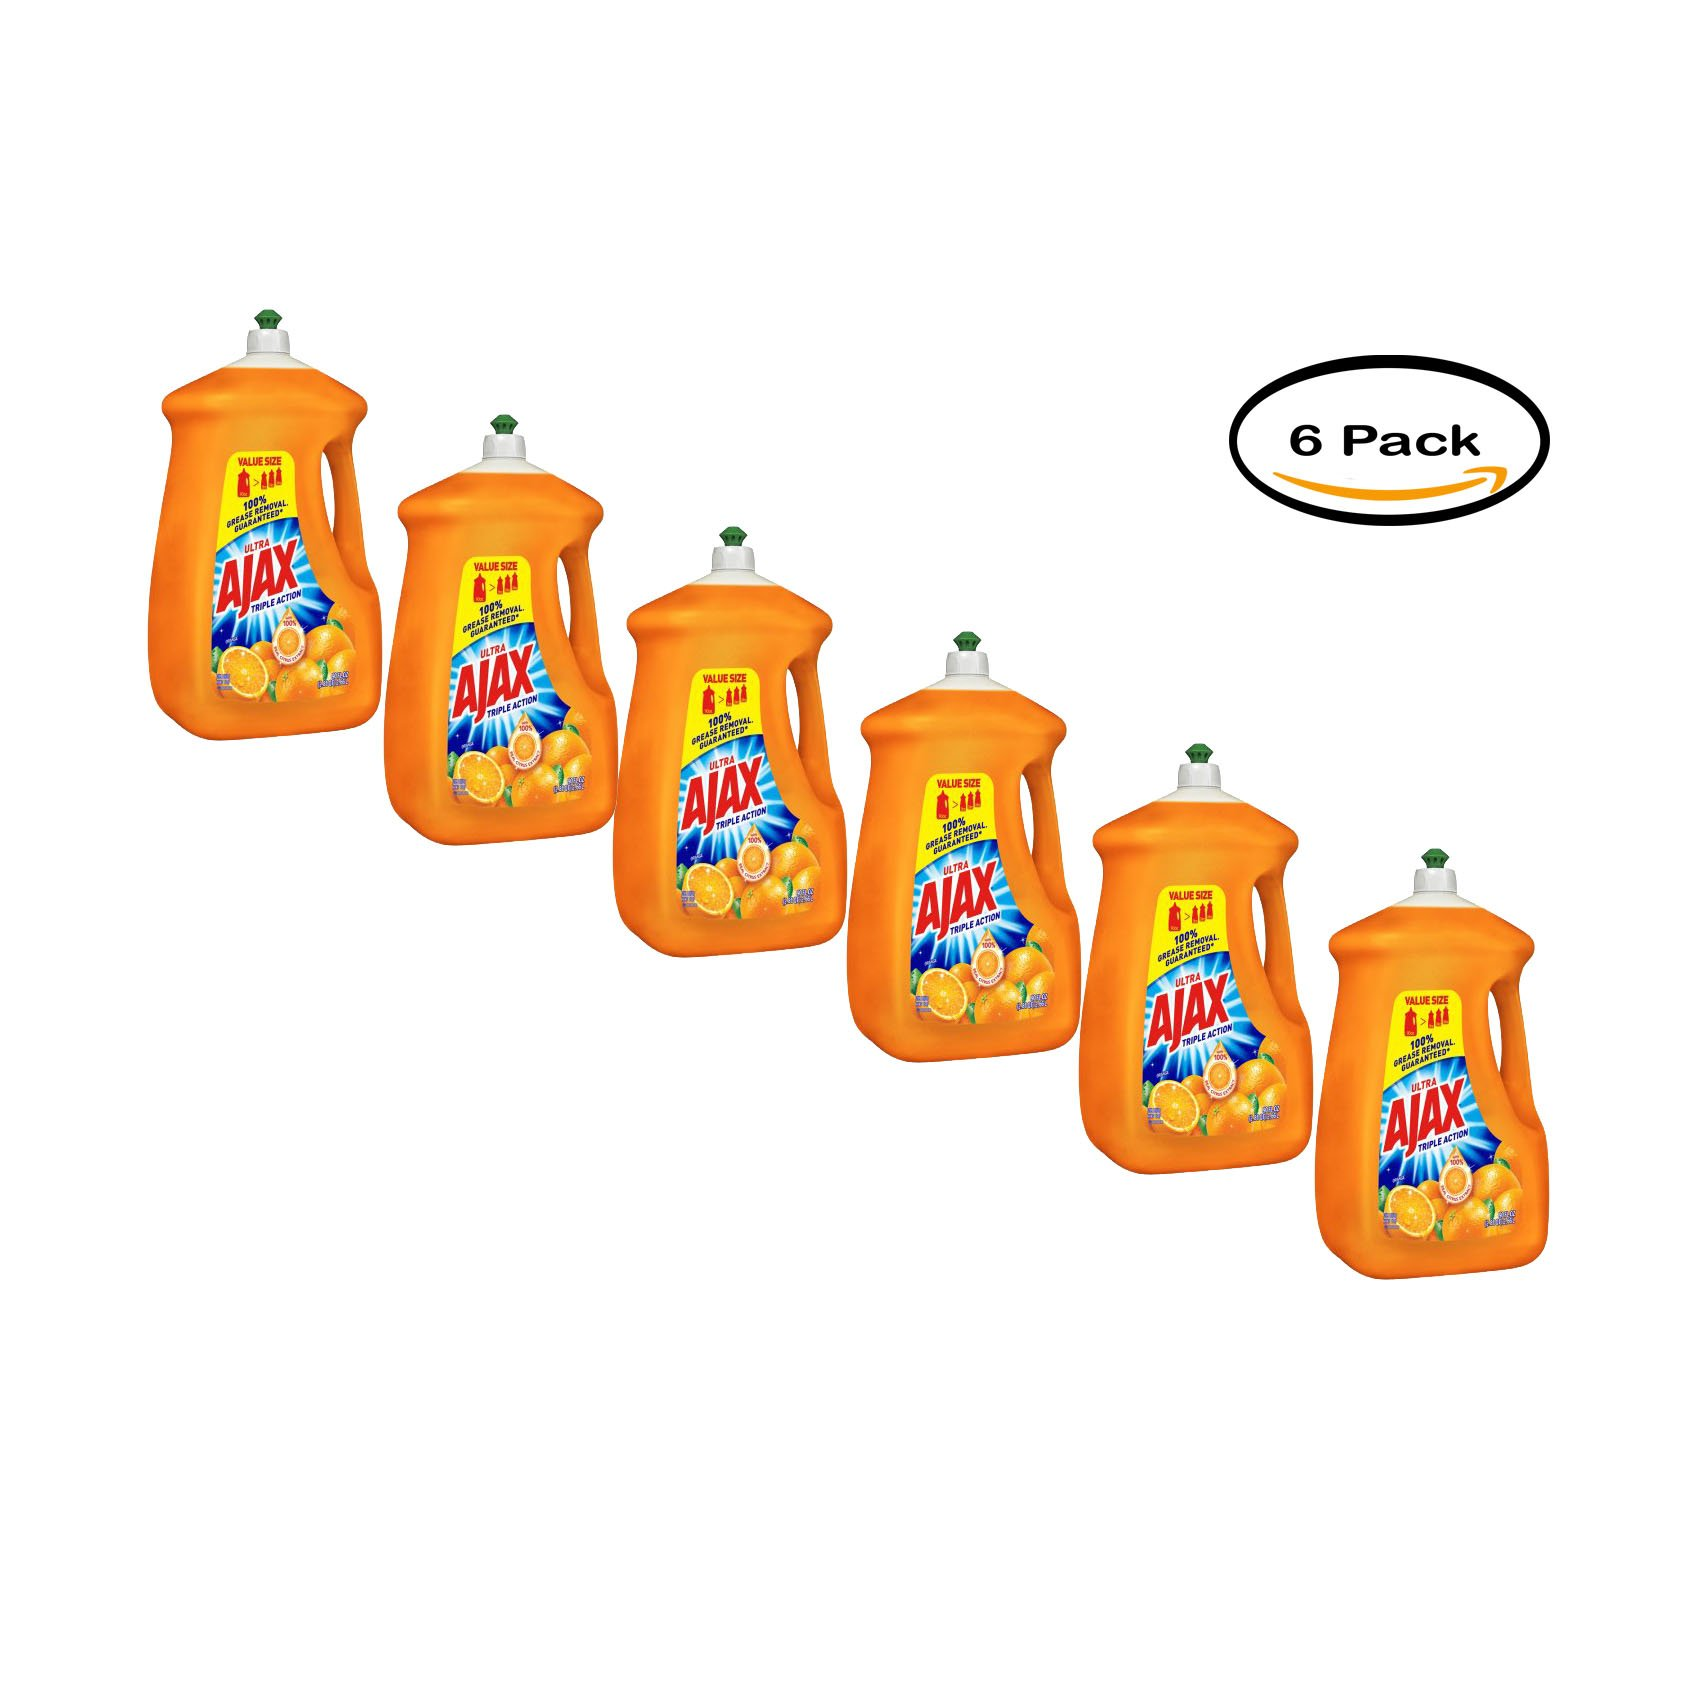 Pack of 6 - Ajax Ultra Triple Action Liquid Dish Soap, Orange - 90 fl oz